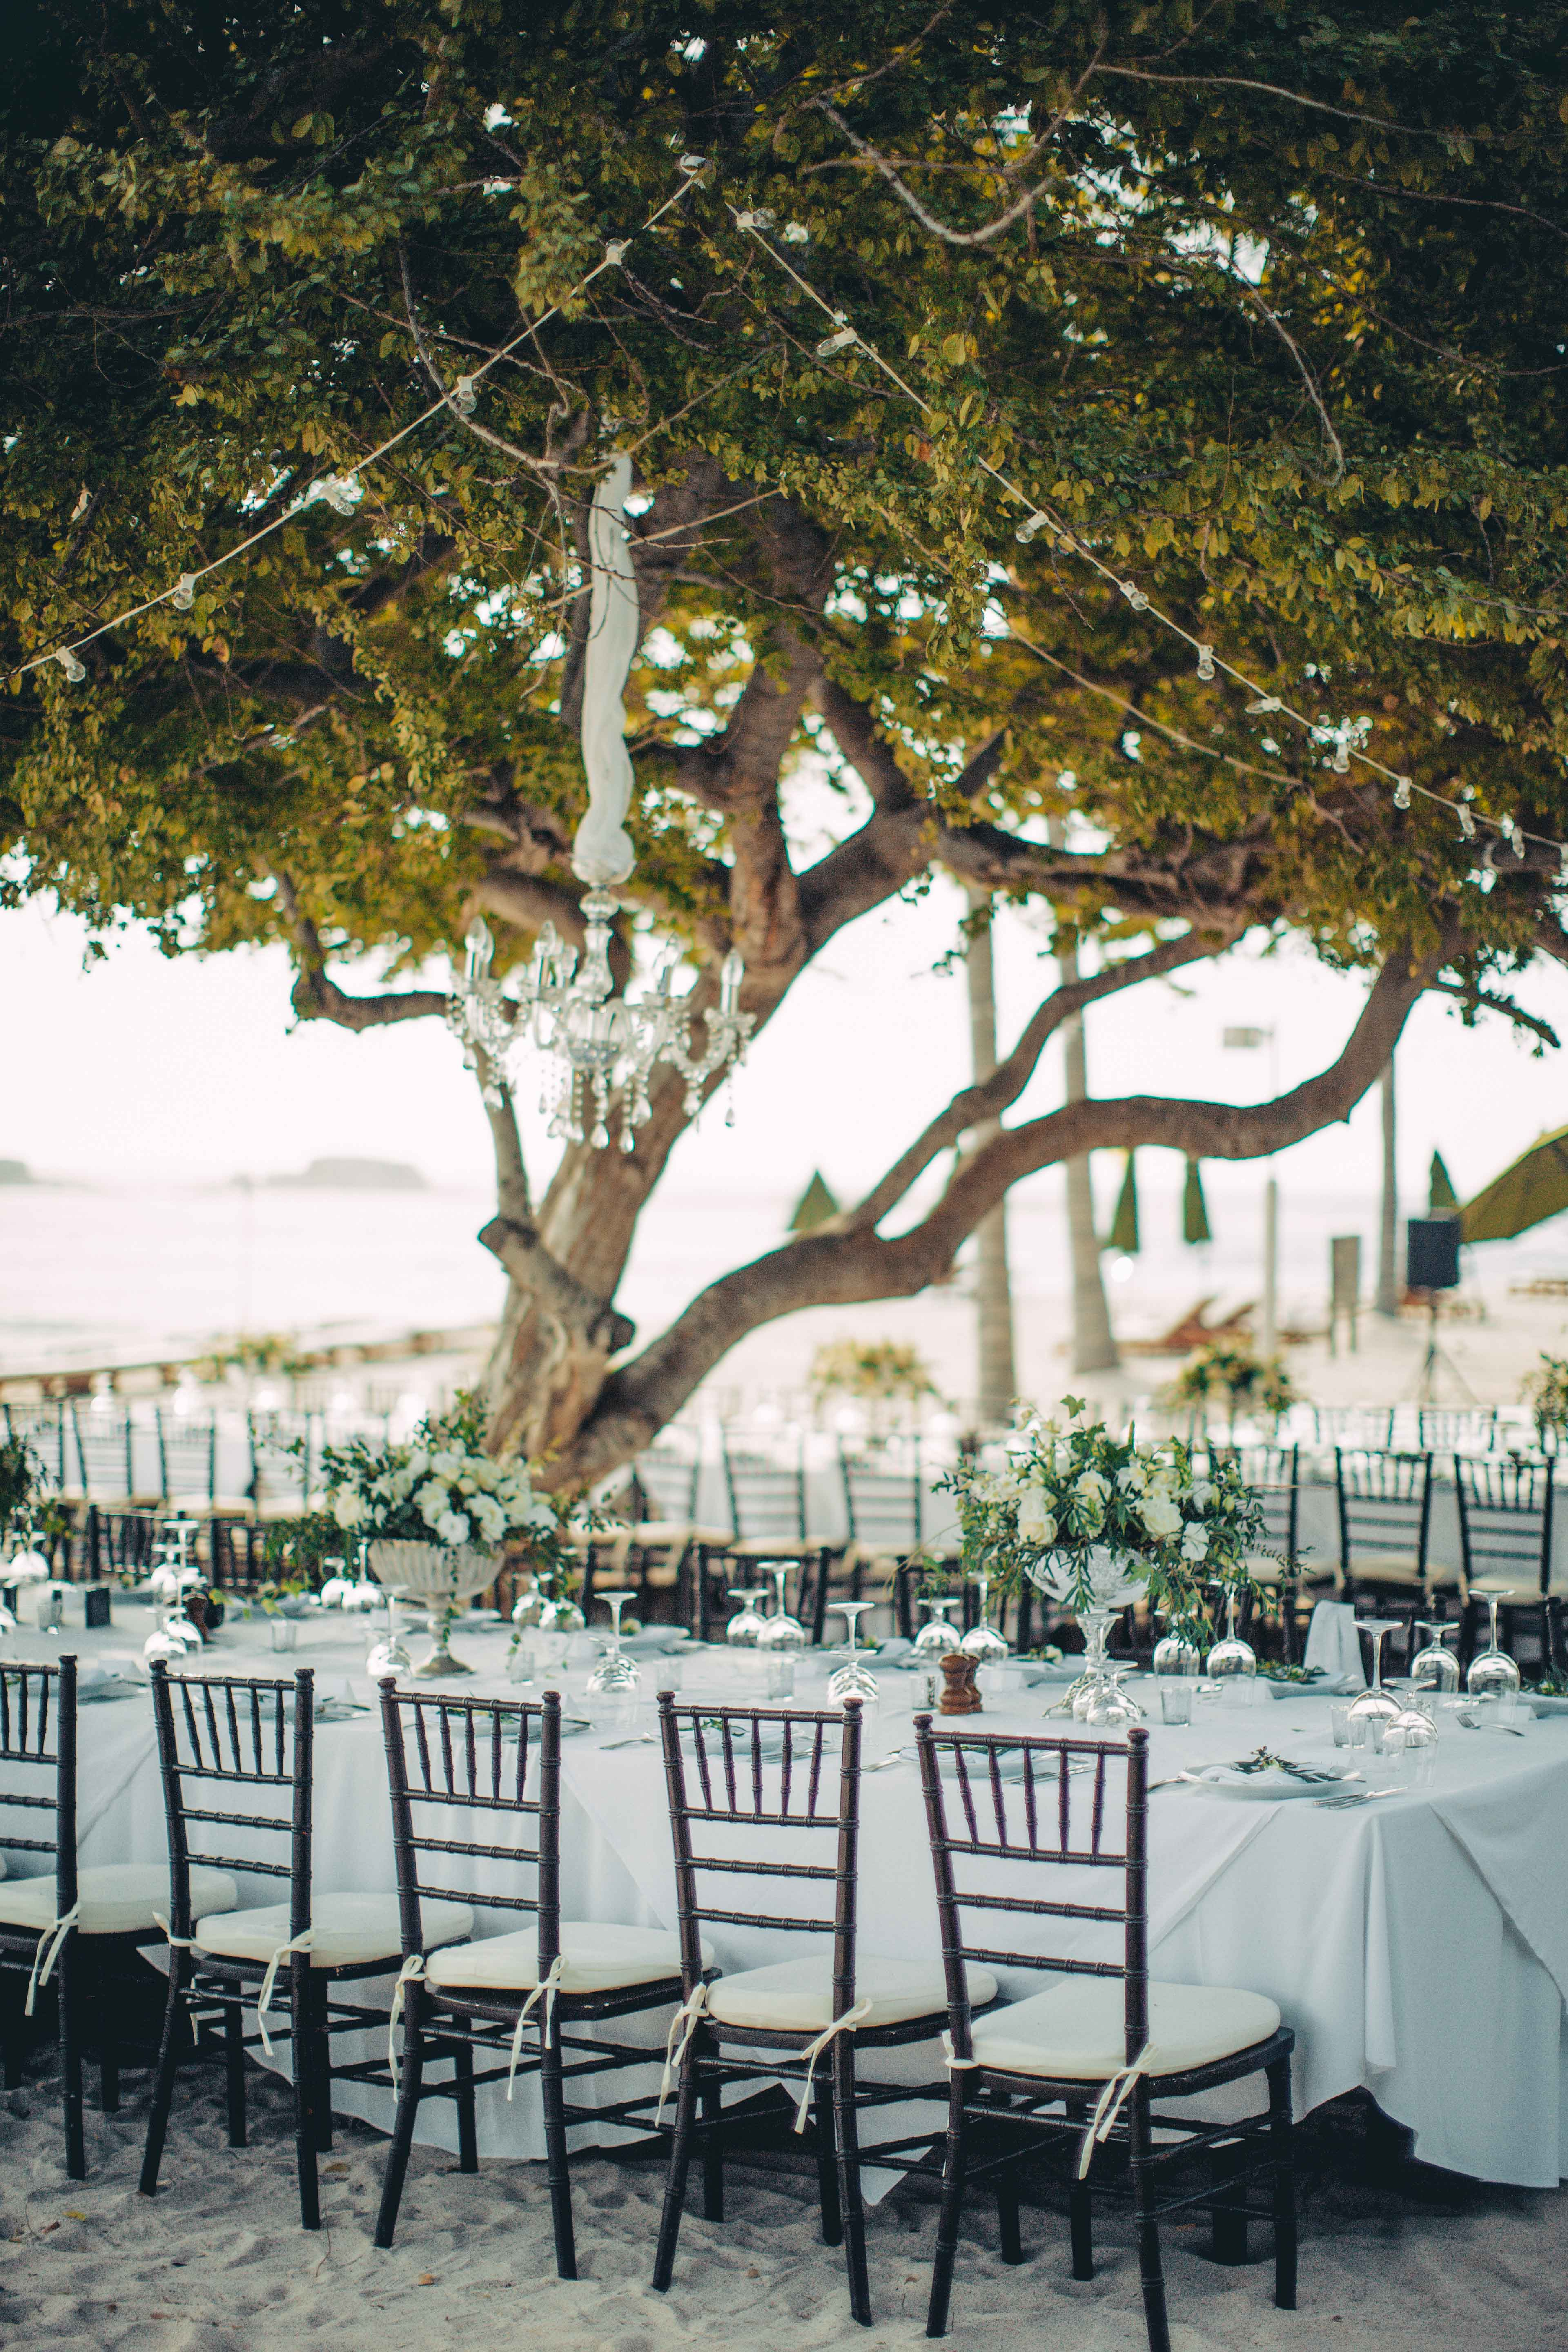 popular real wedding inside weddings destination wedding in mexico on beach under trees